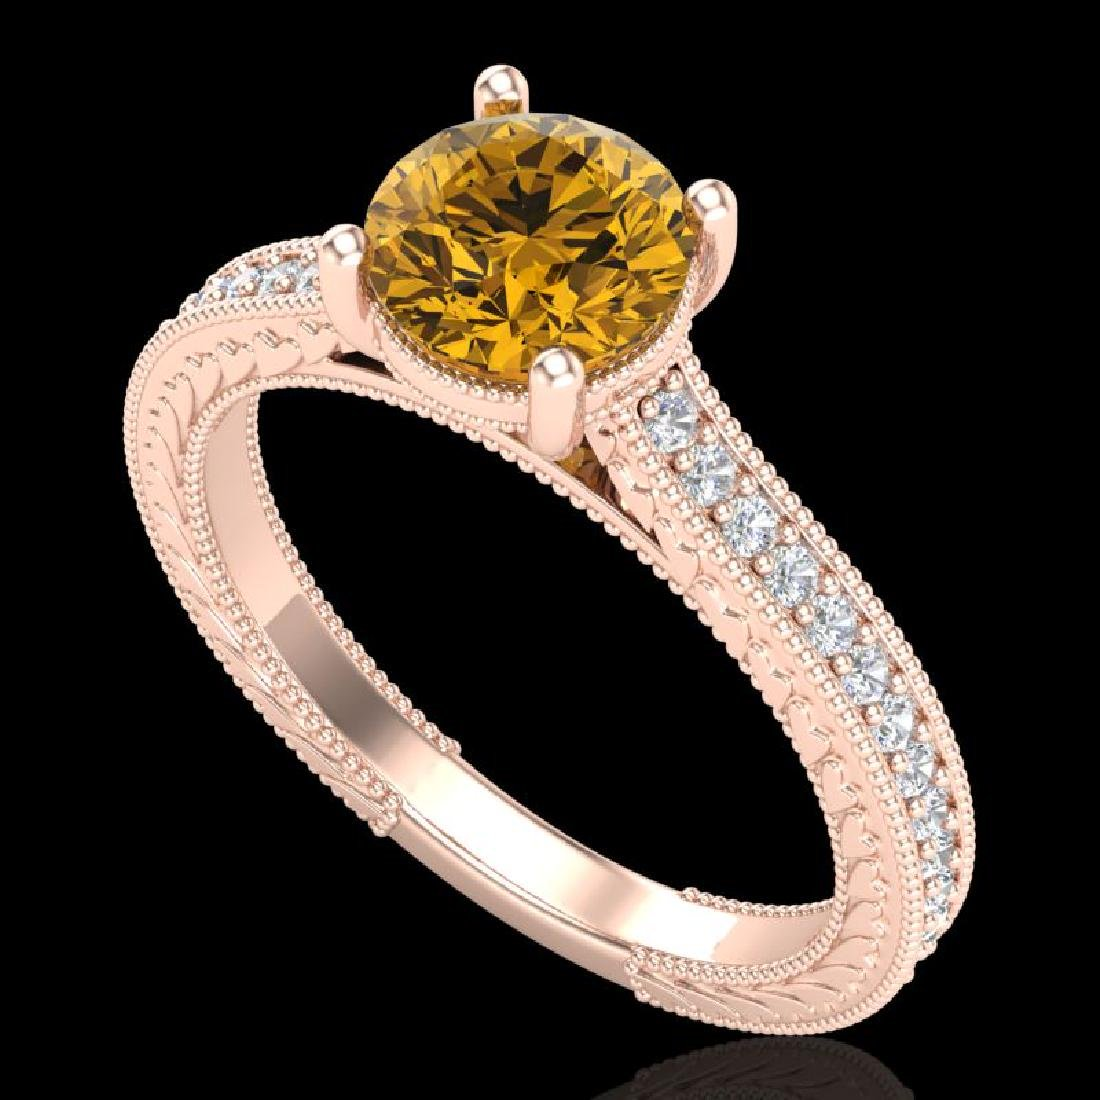 1.45 CTW Intense Fancy Yellow Diamond Engagement Art